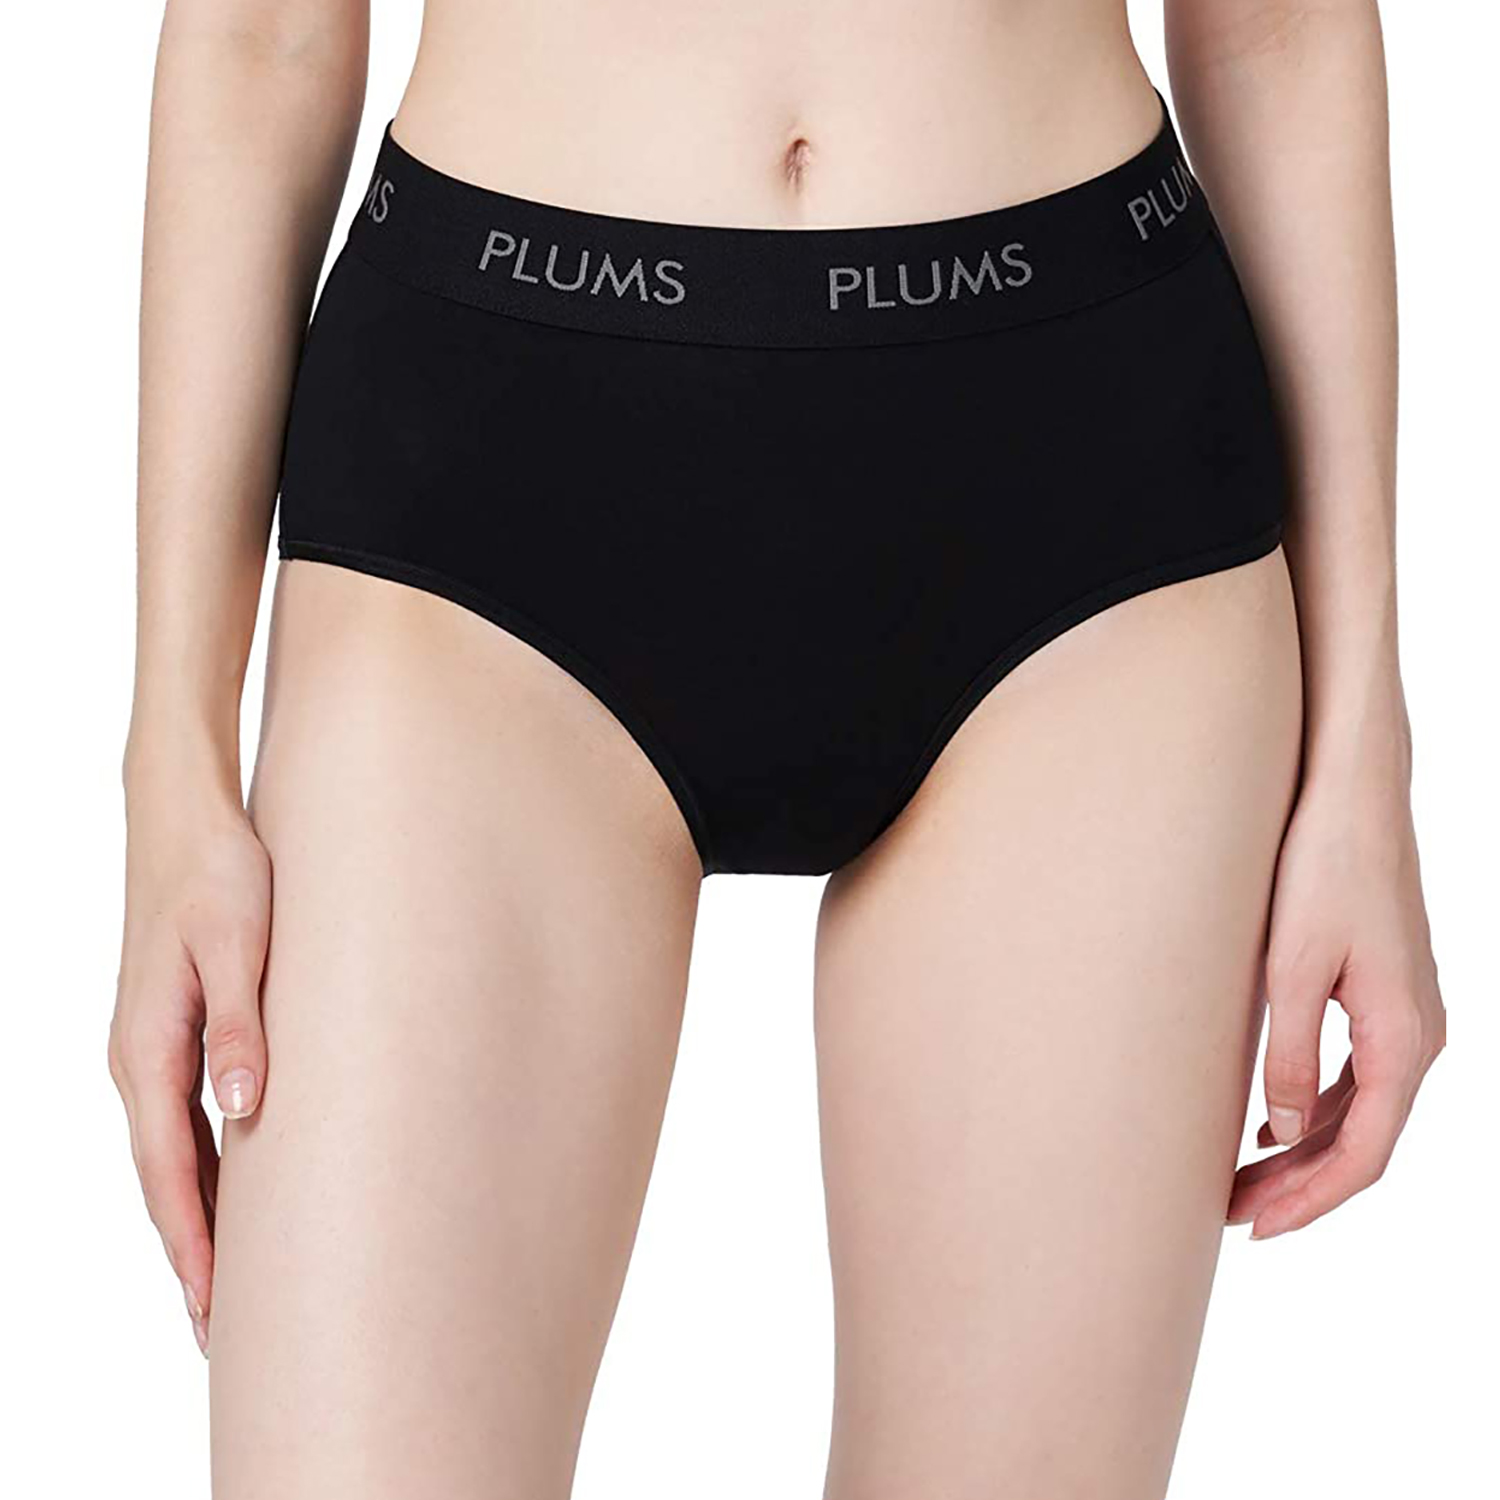 Plums hipster brief